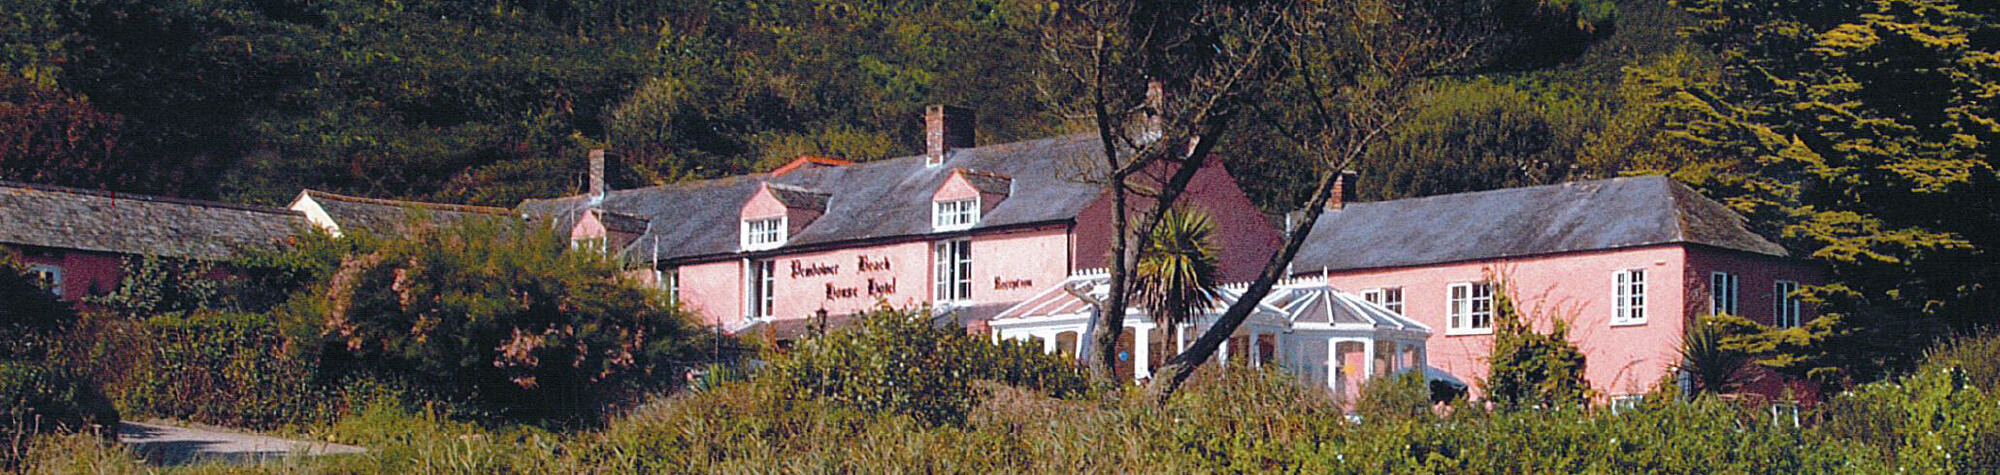 pendower beach hotel history - History